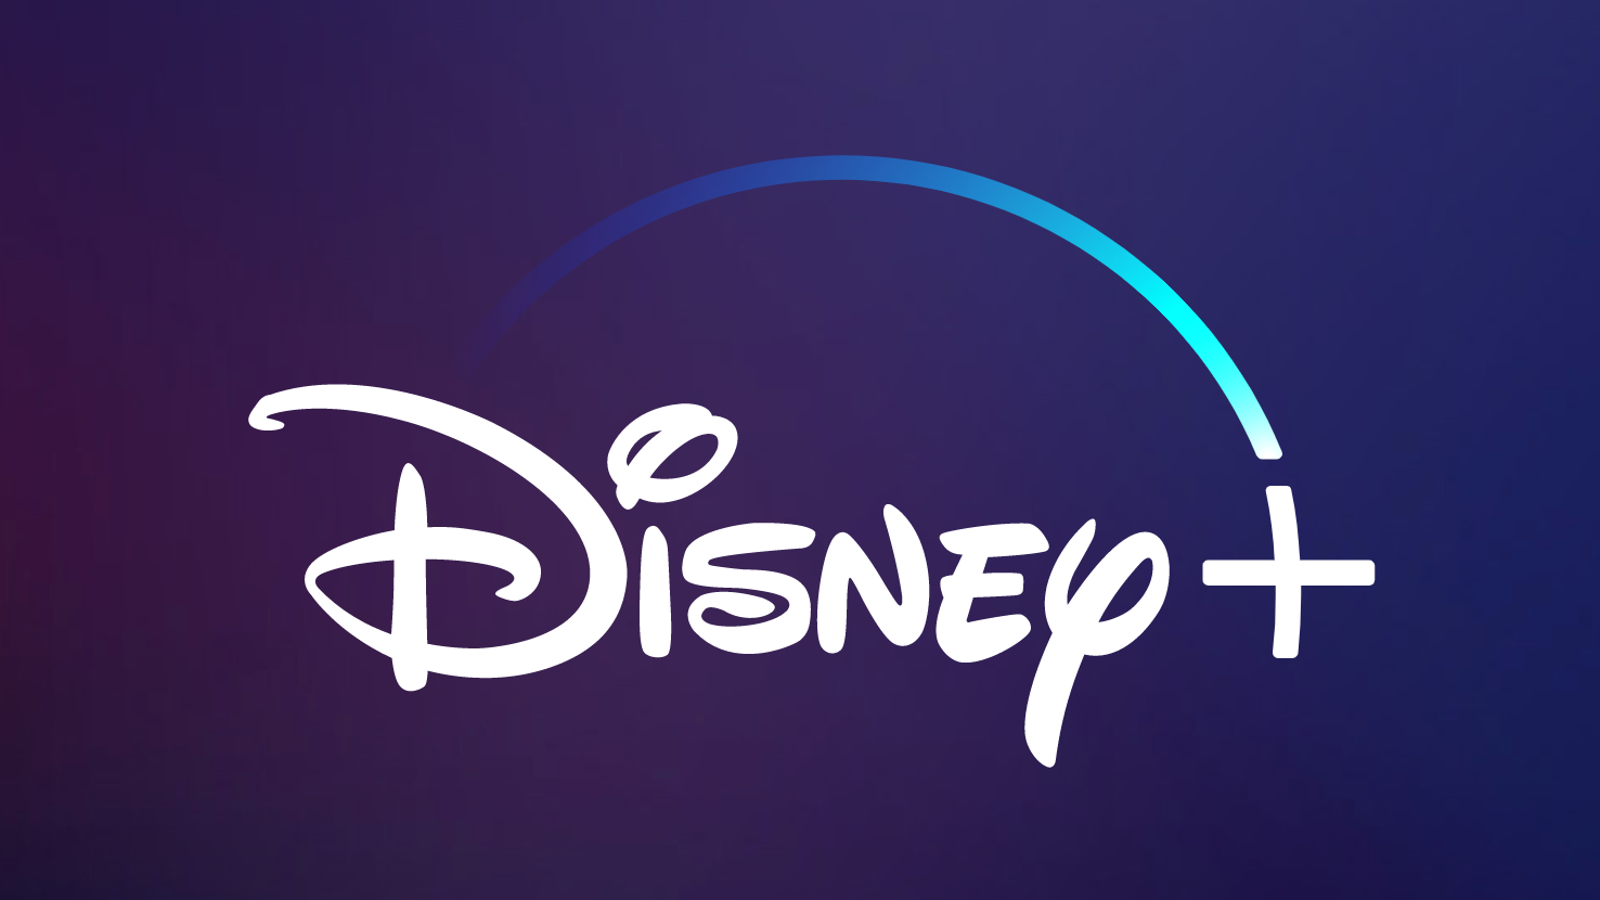 Disney+ May Not Come to Fire TV Over Reported Ad Beef Between Amazon and Disney